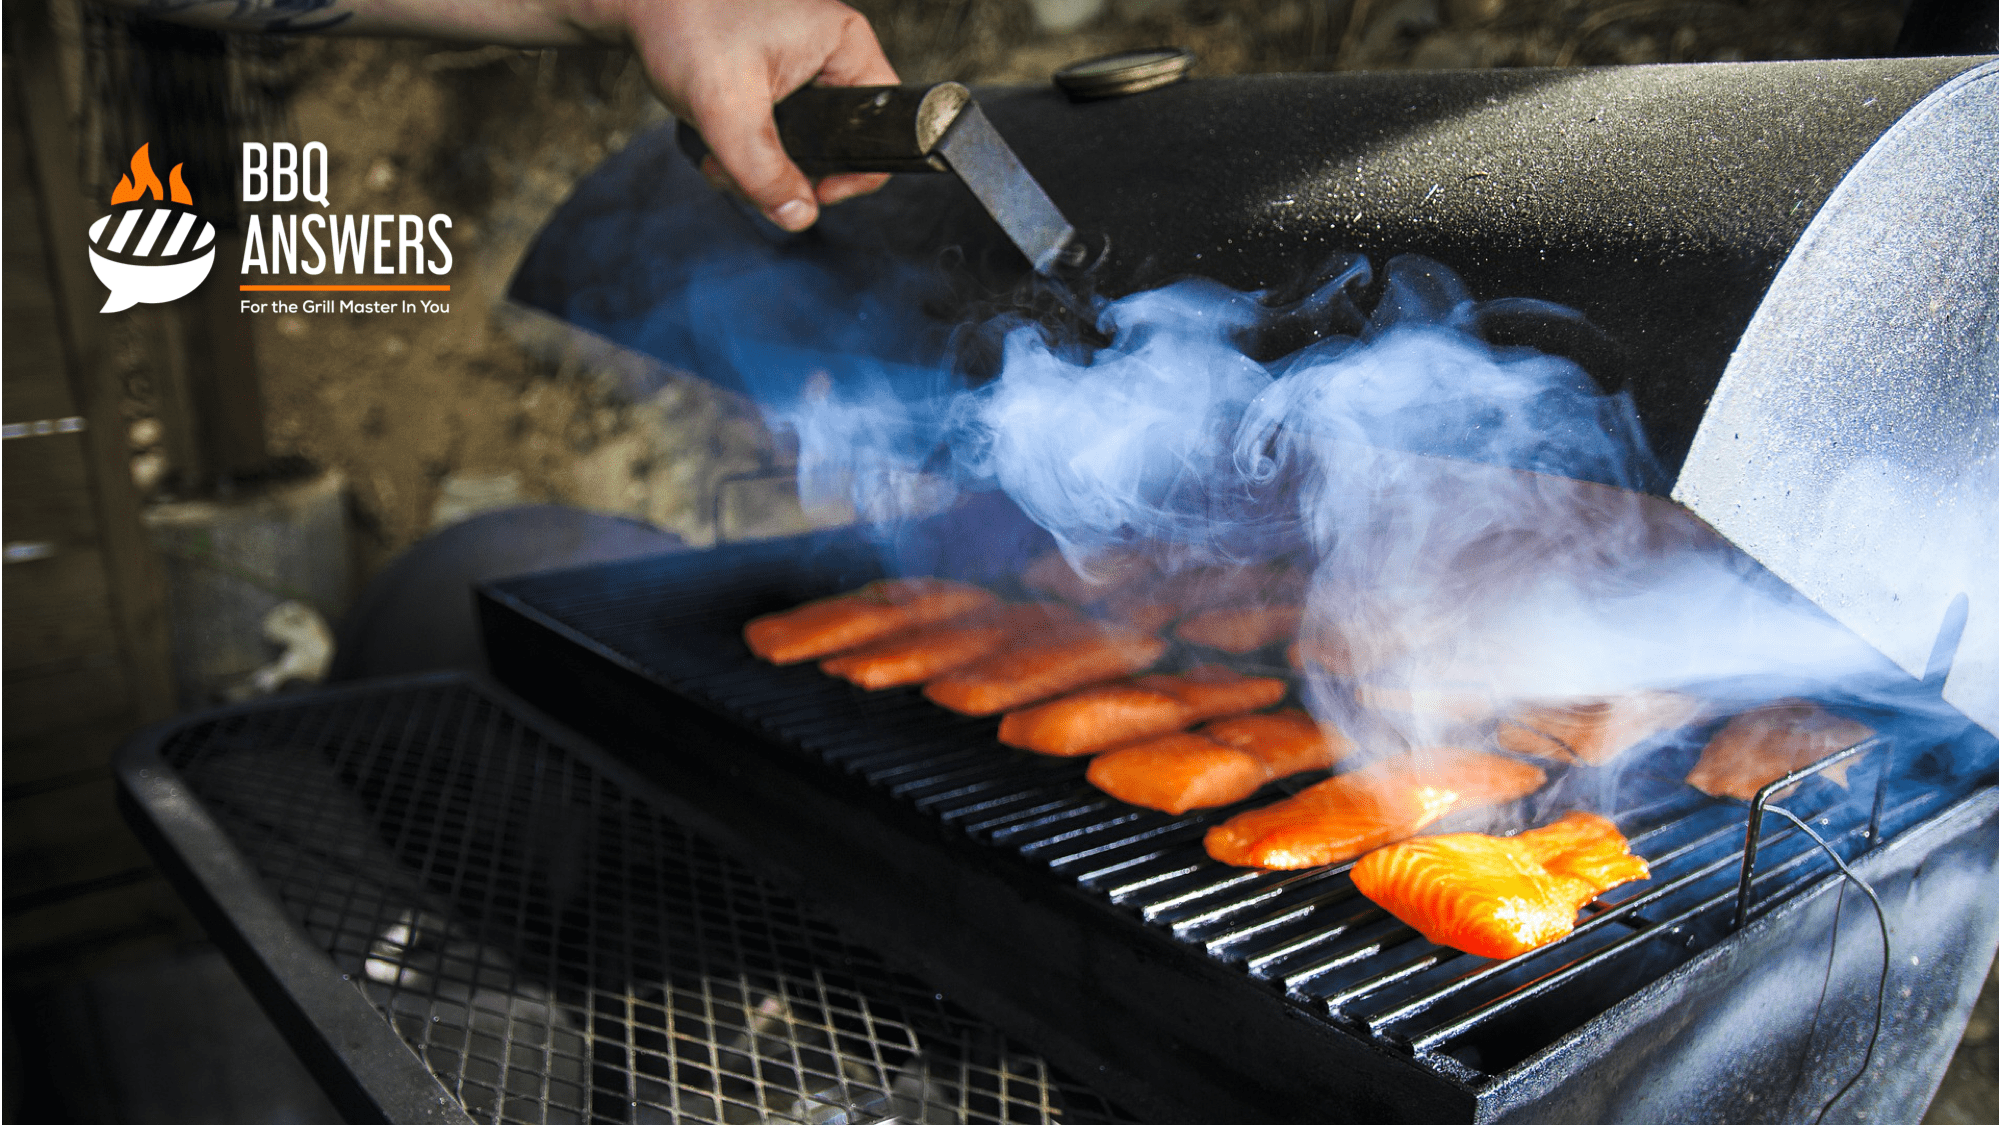 BBQ Smoking Fundamentals, Science and Techniques   BBQanswers